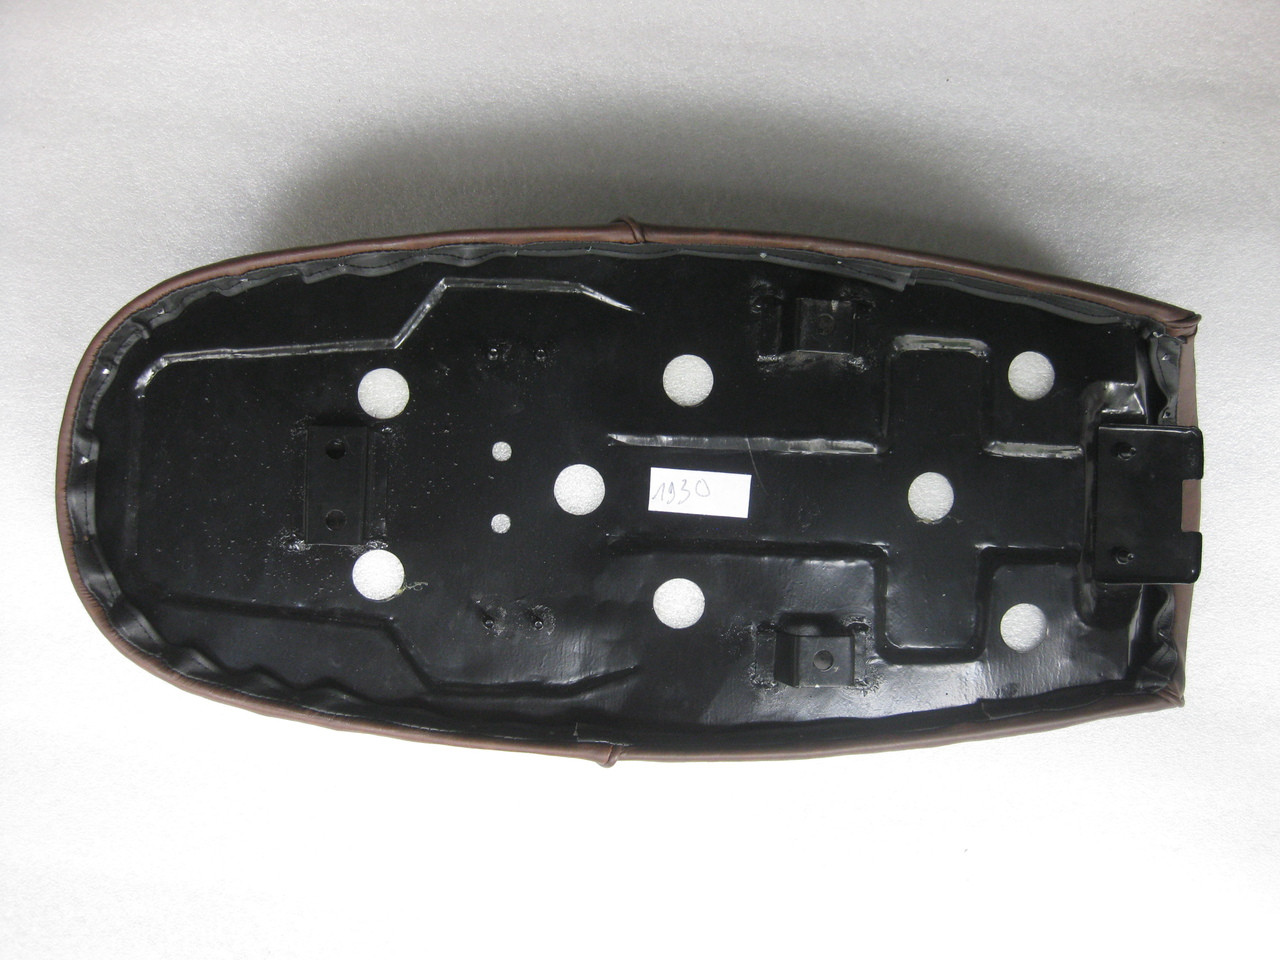 1981 - 1984 Honda CB450 CB450T, CB450 Twin Cafe Racer Motorcycle Seat with Metal Pan #4364